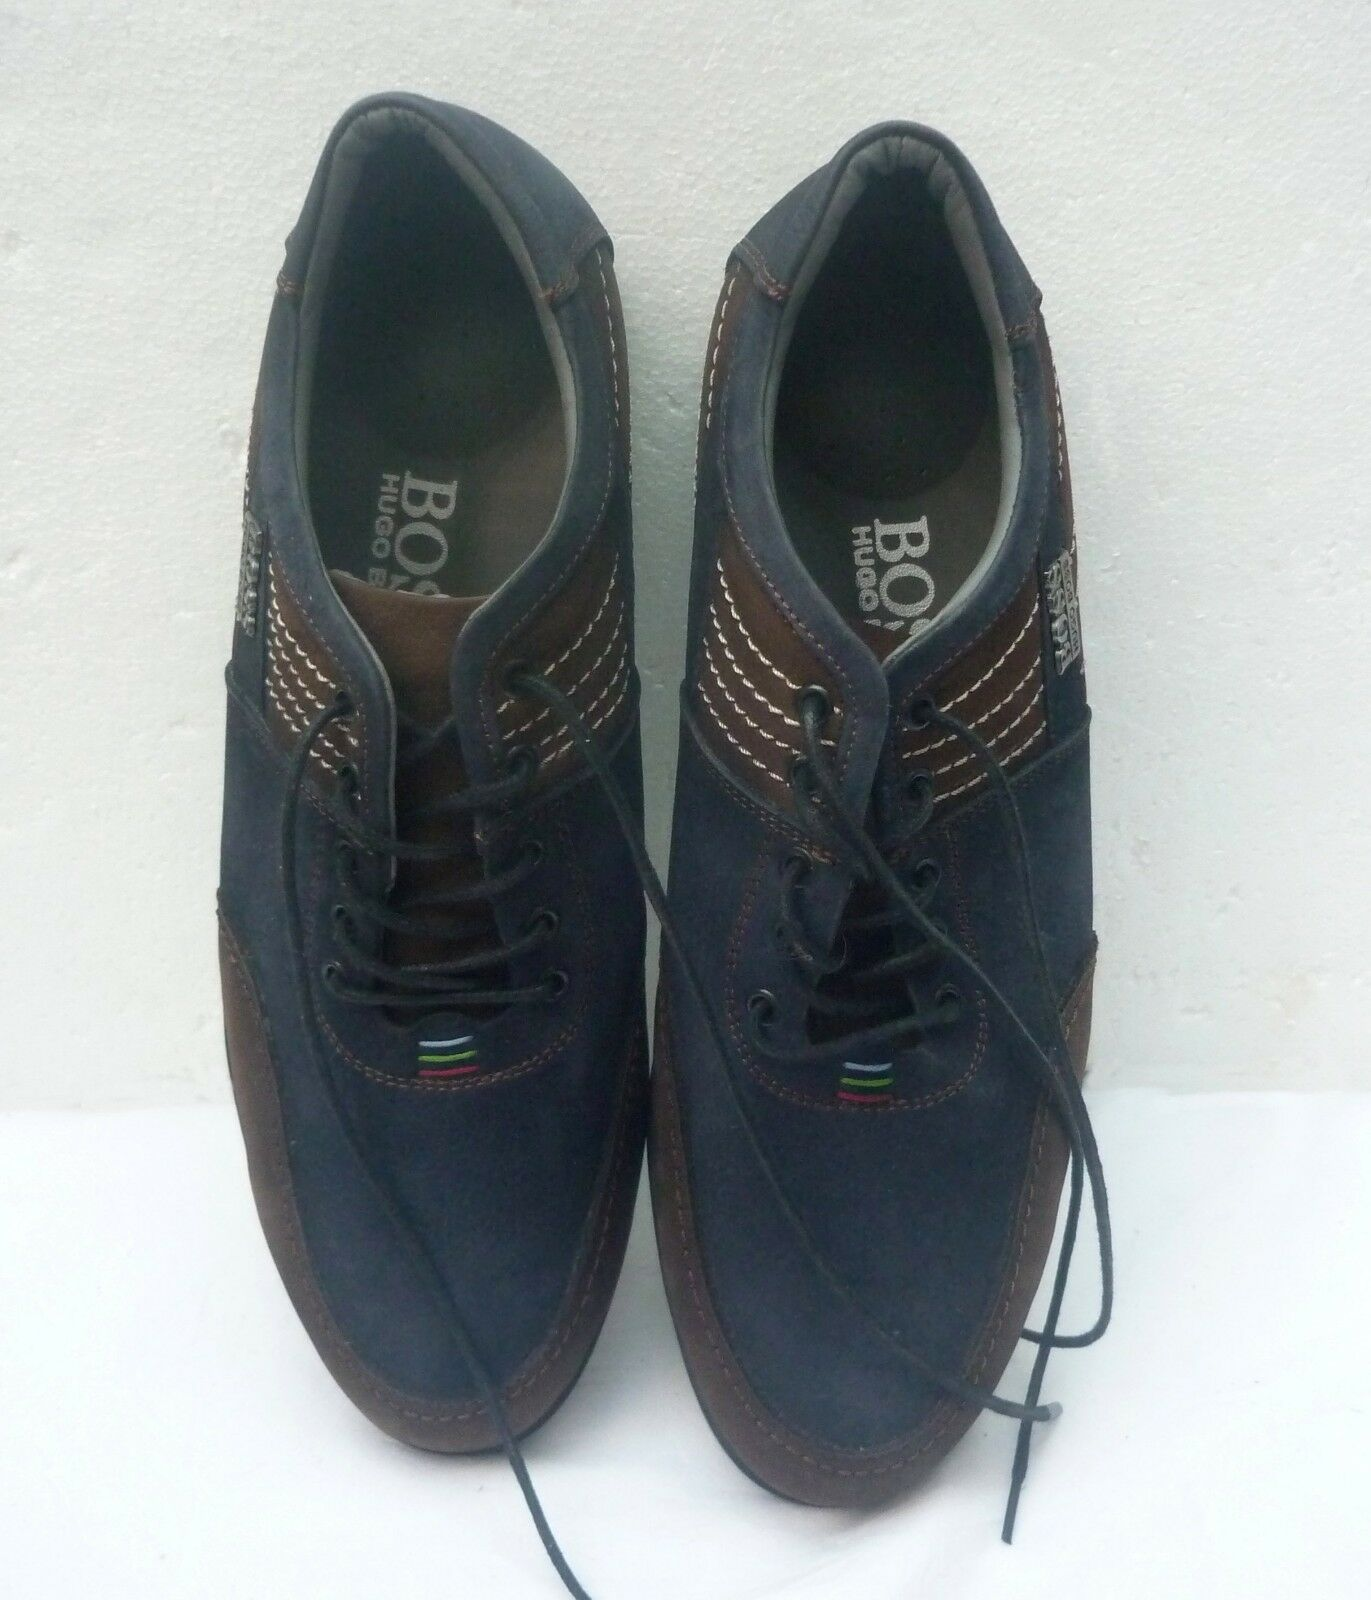 HUGO BOSS casual LEATHER SHOES - DARK blueE   BROWN - UK size 10